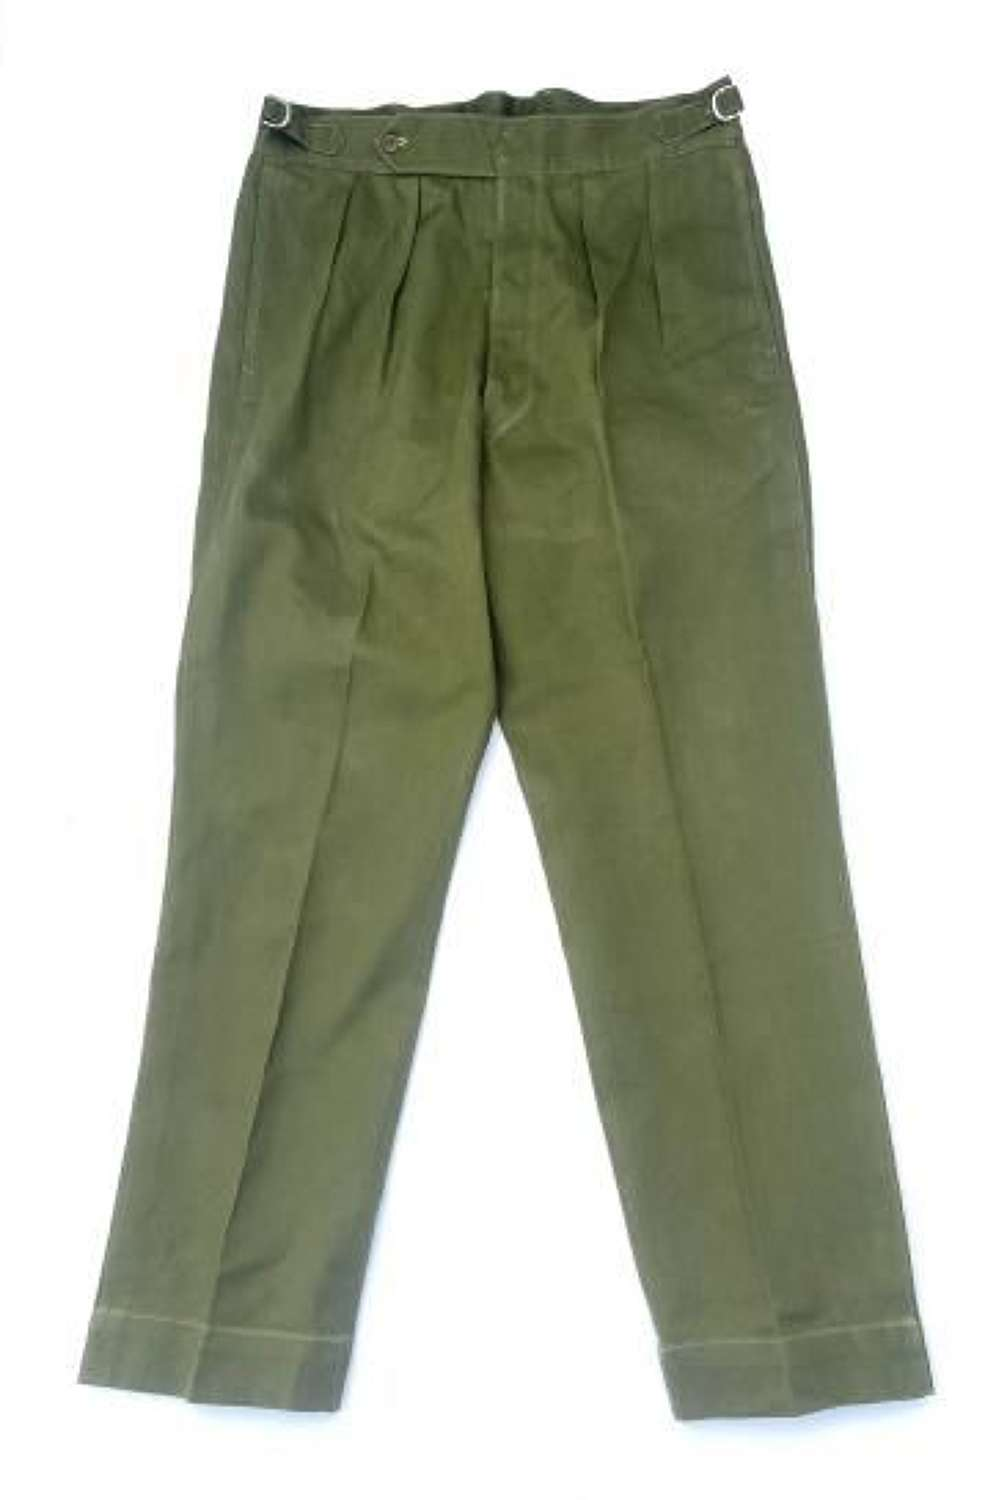 Original 1950s Theatre Made British Army Officers Jungle Green Trousers